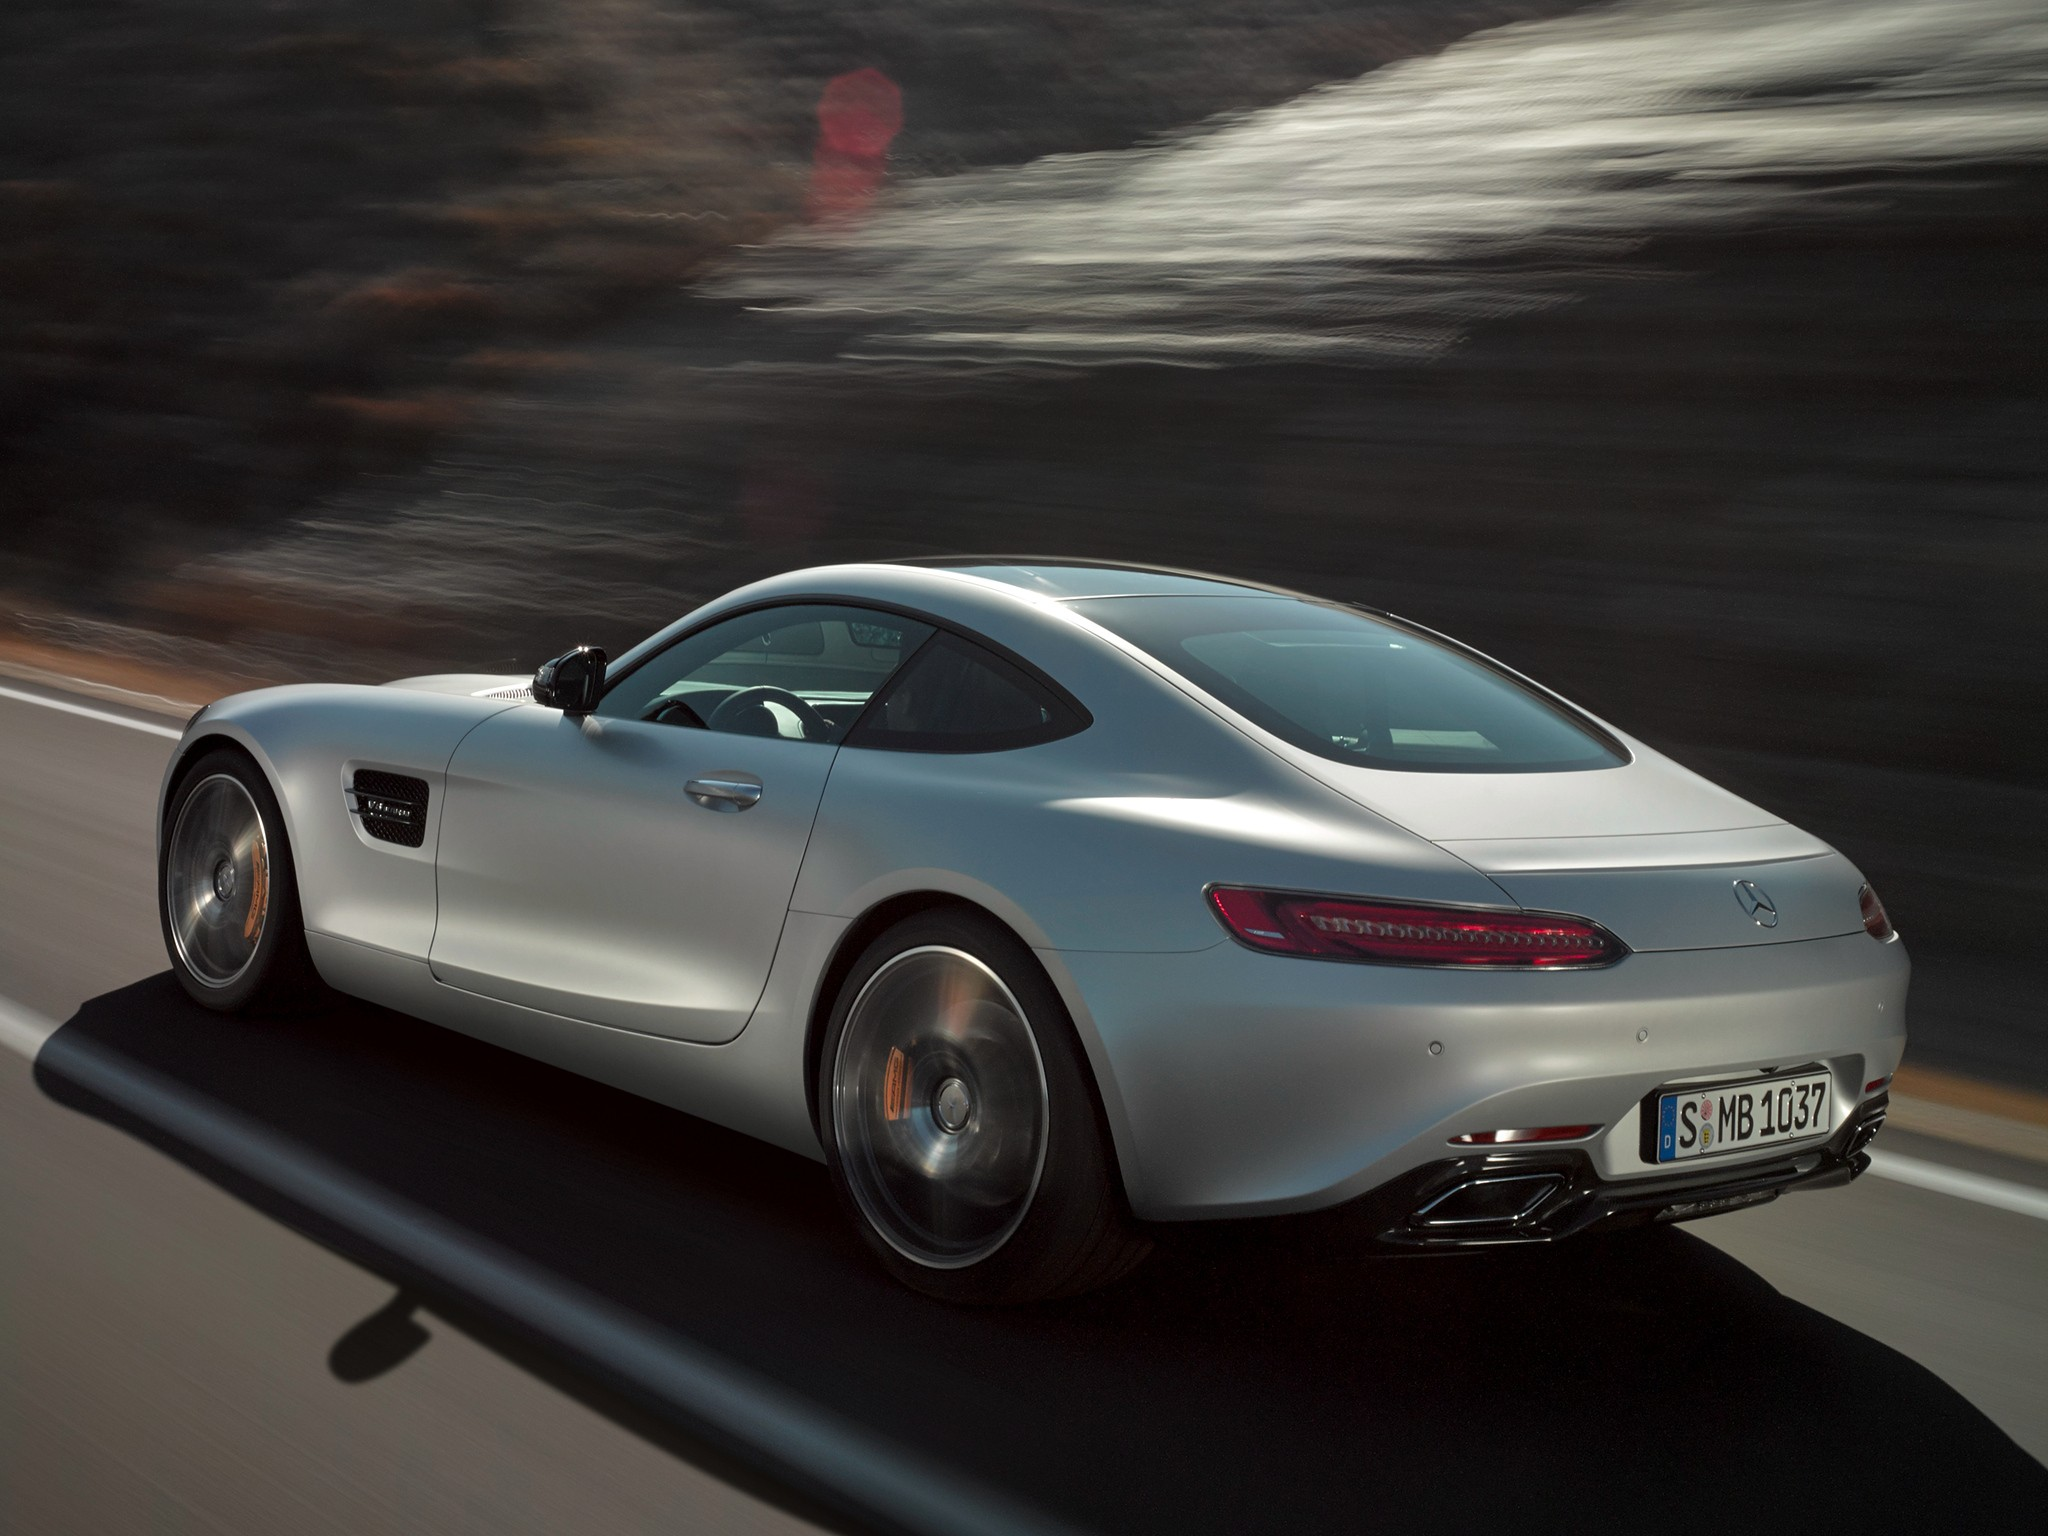 mercedes-amg gt s recalled in the united states over driveshaft